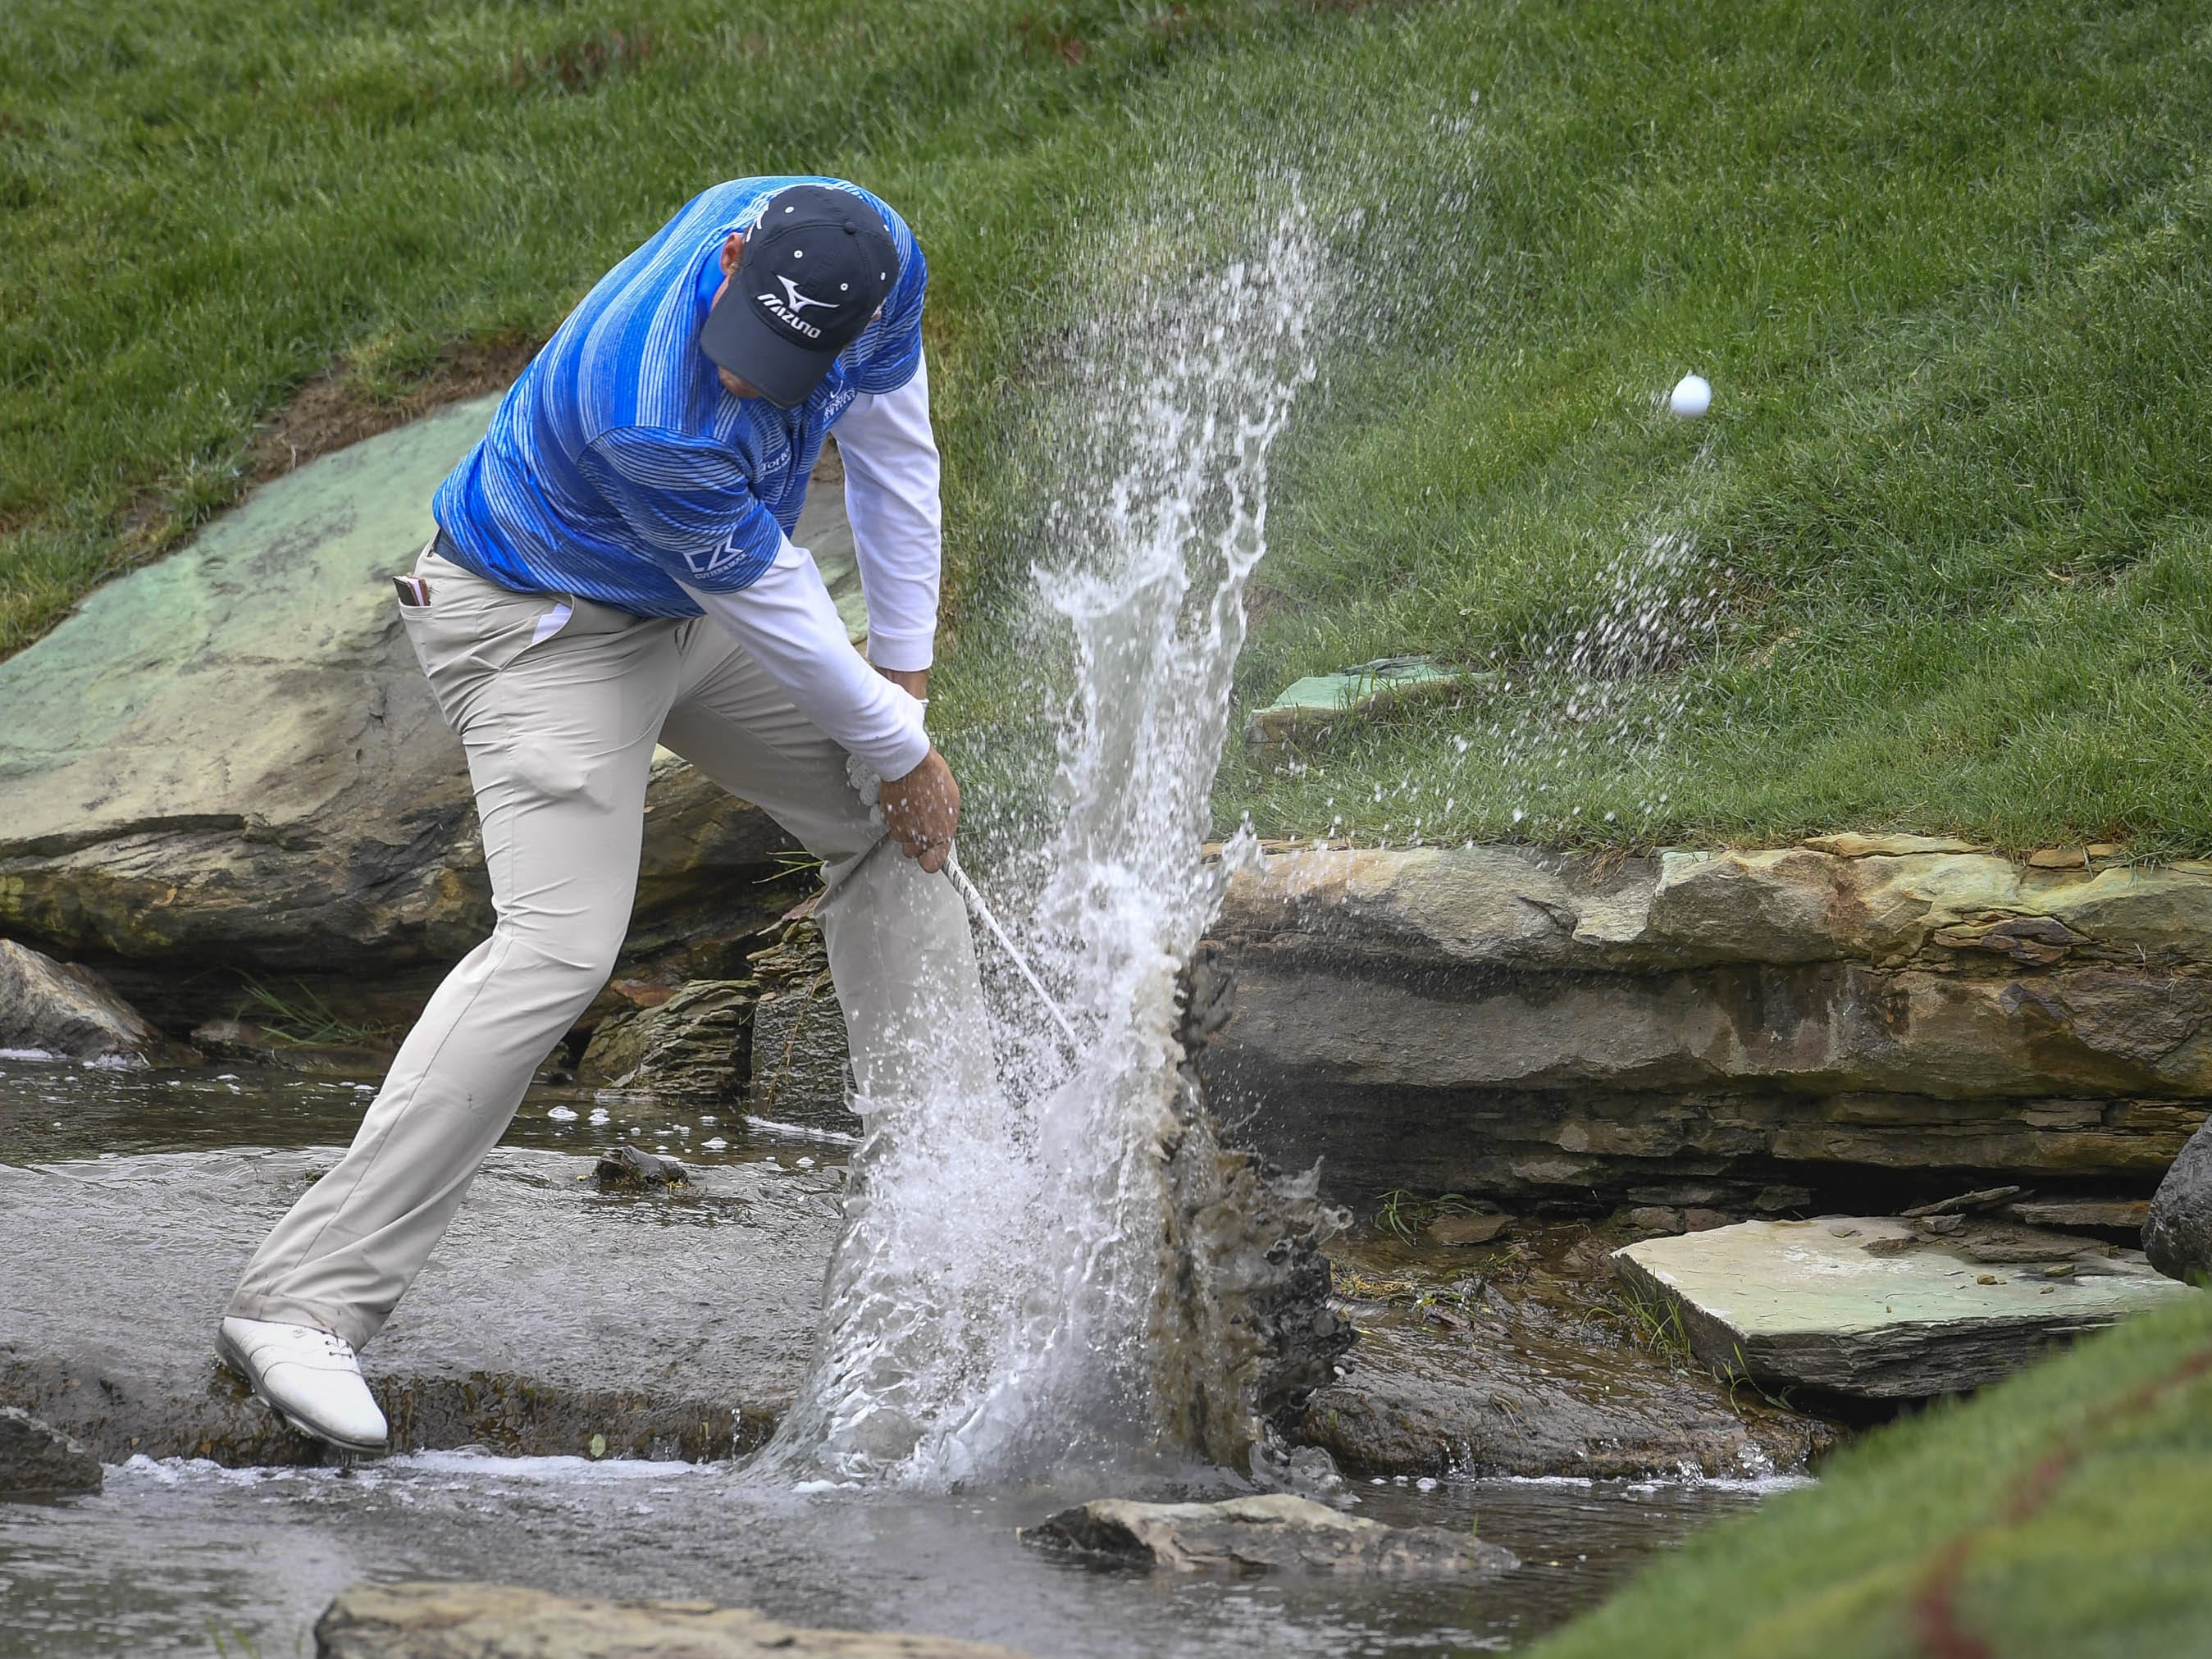 Adam Schenk, of Vincennes, Indiana, hits a chip shot out of the creek on No. 16 as players try to finish the second round of the United Leasing & Finance Championship golf tournament at Victoria National Golf Club on Saturday, April 22, 2017.